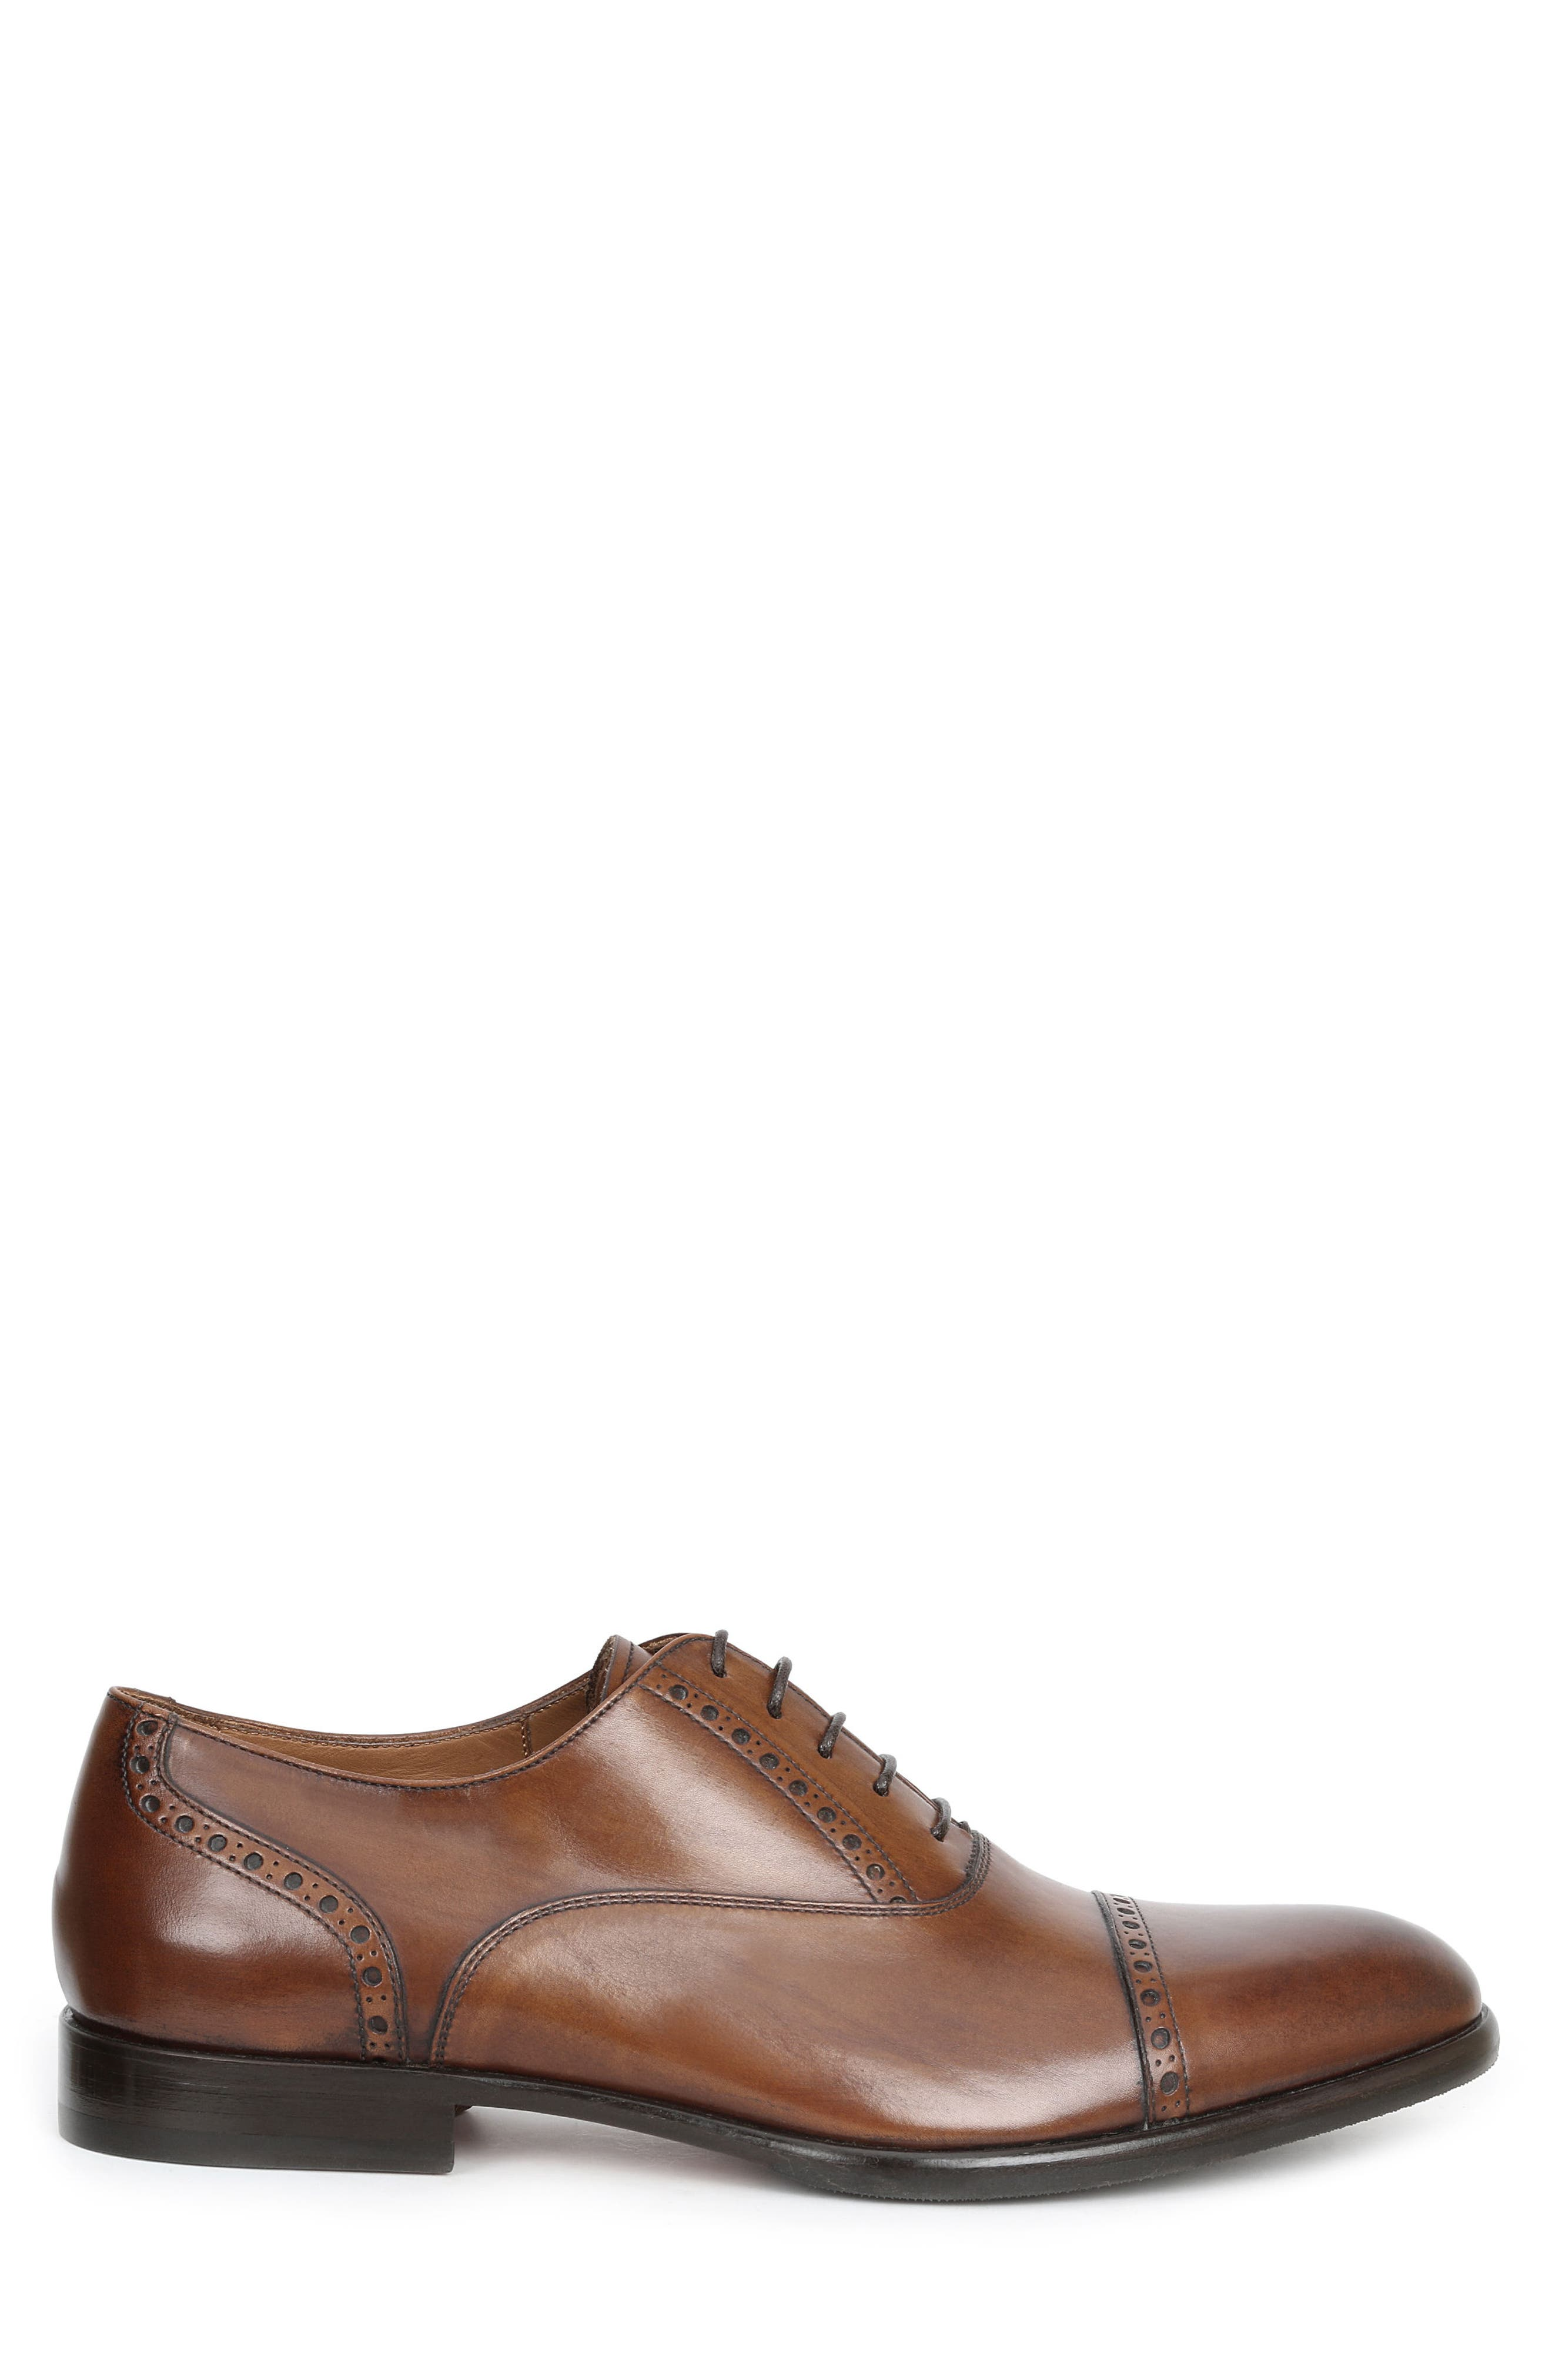 Pisa Cap Toe Oxford,                             Alternate thumbnail 3, color,                             Cognac